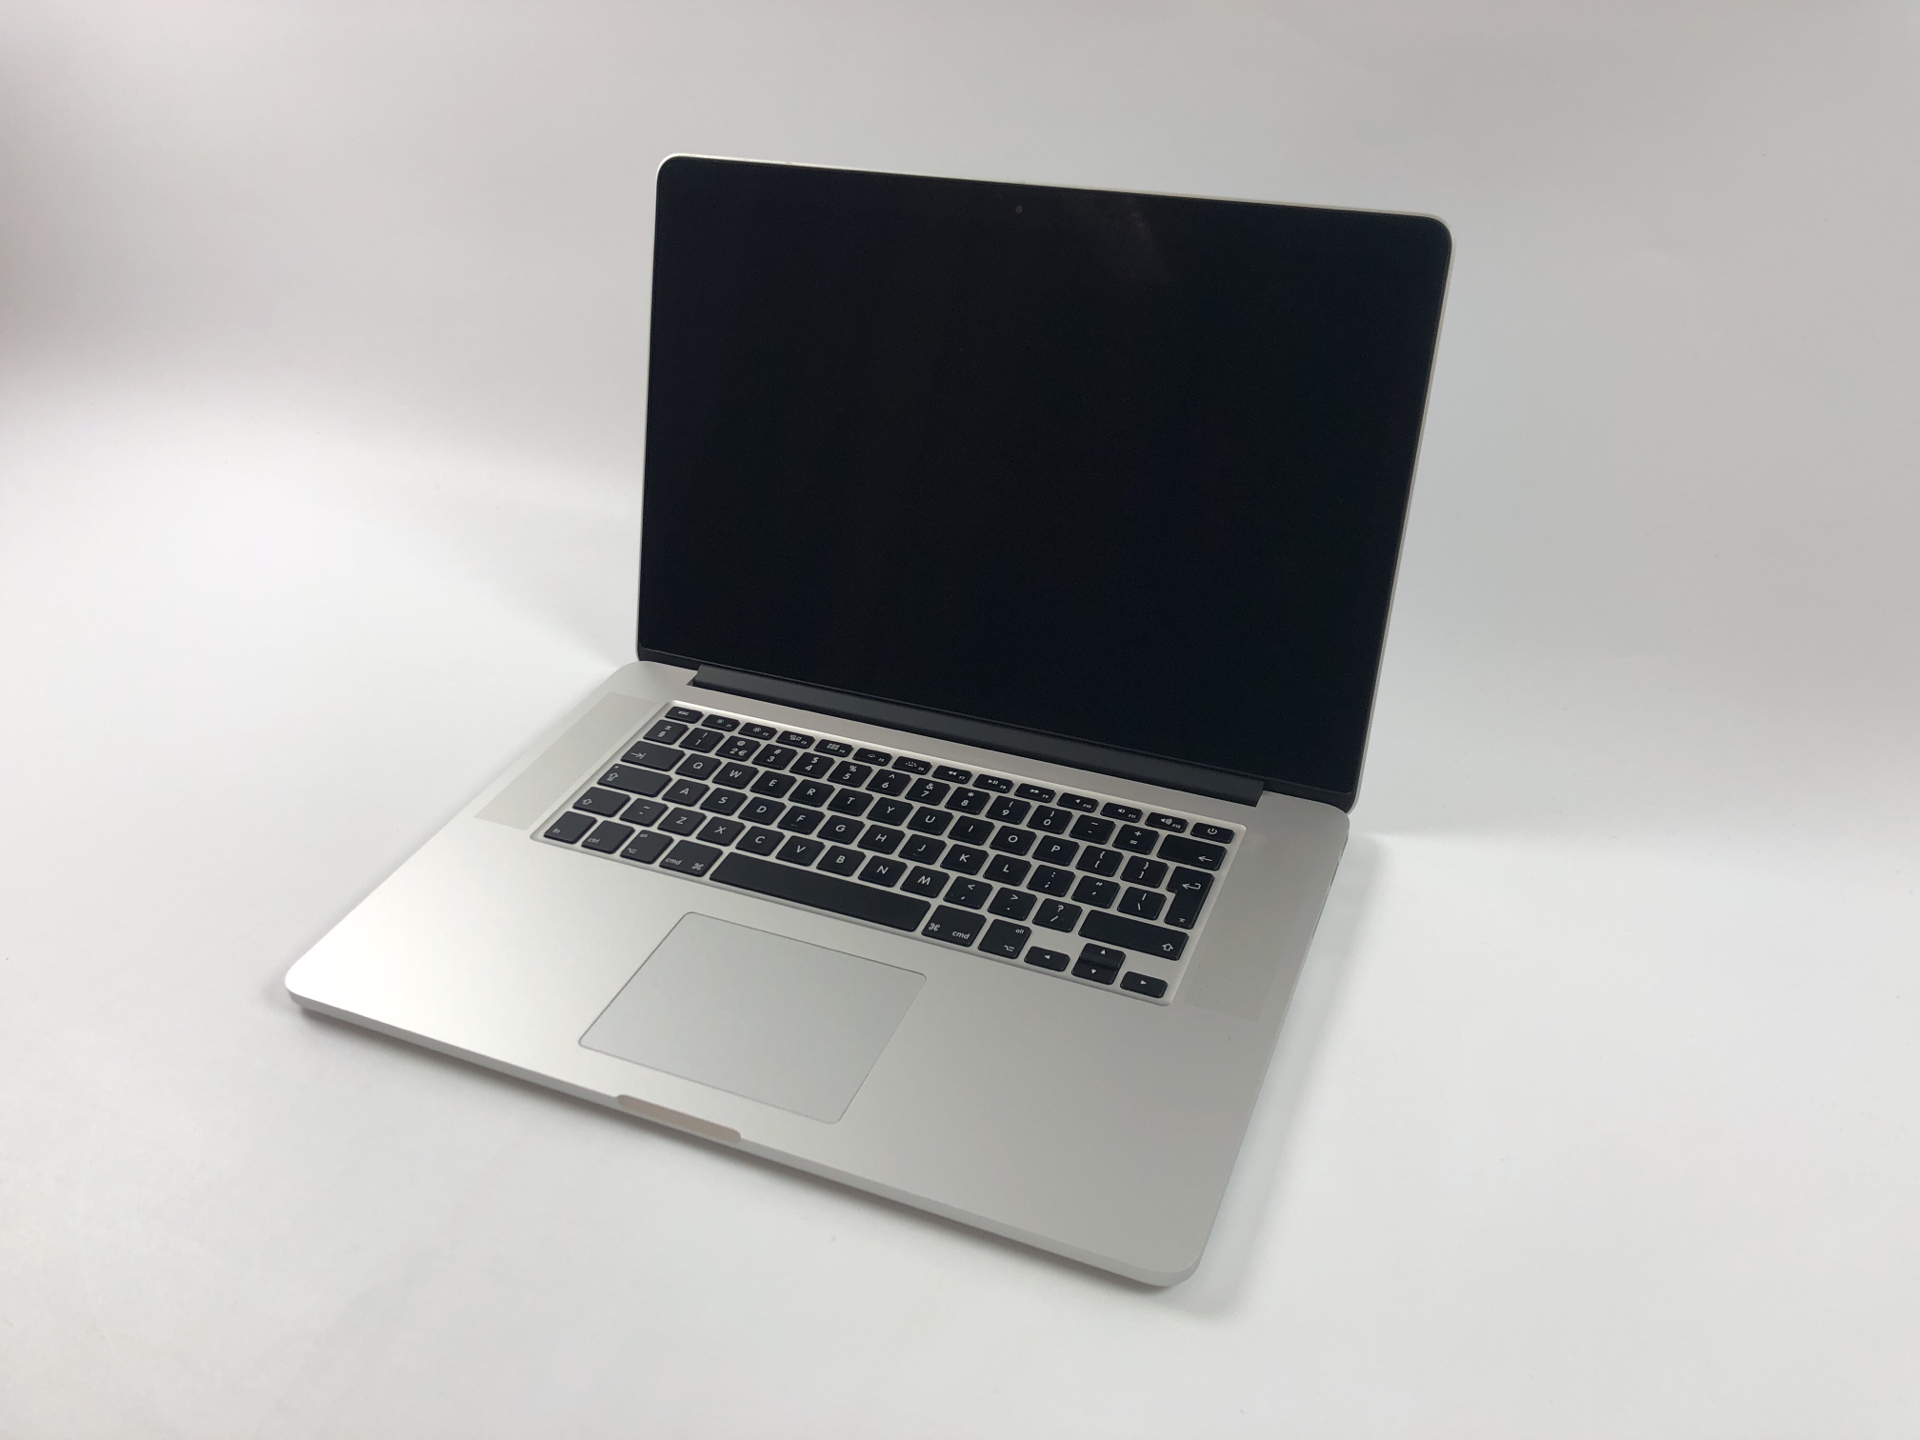 "MacBook Pro Retina 15"" Mid 2014 (Intel Quad-Core i7 2.2 GHz 16 GB RAM 256 GB SSD), Intel Quad-Core i7 2.2 GHz, 16 GB RAM, 256 GB SSD, bild 1"